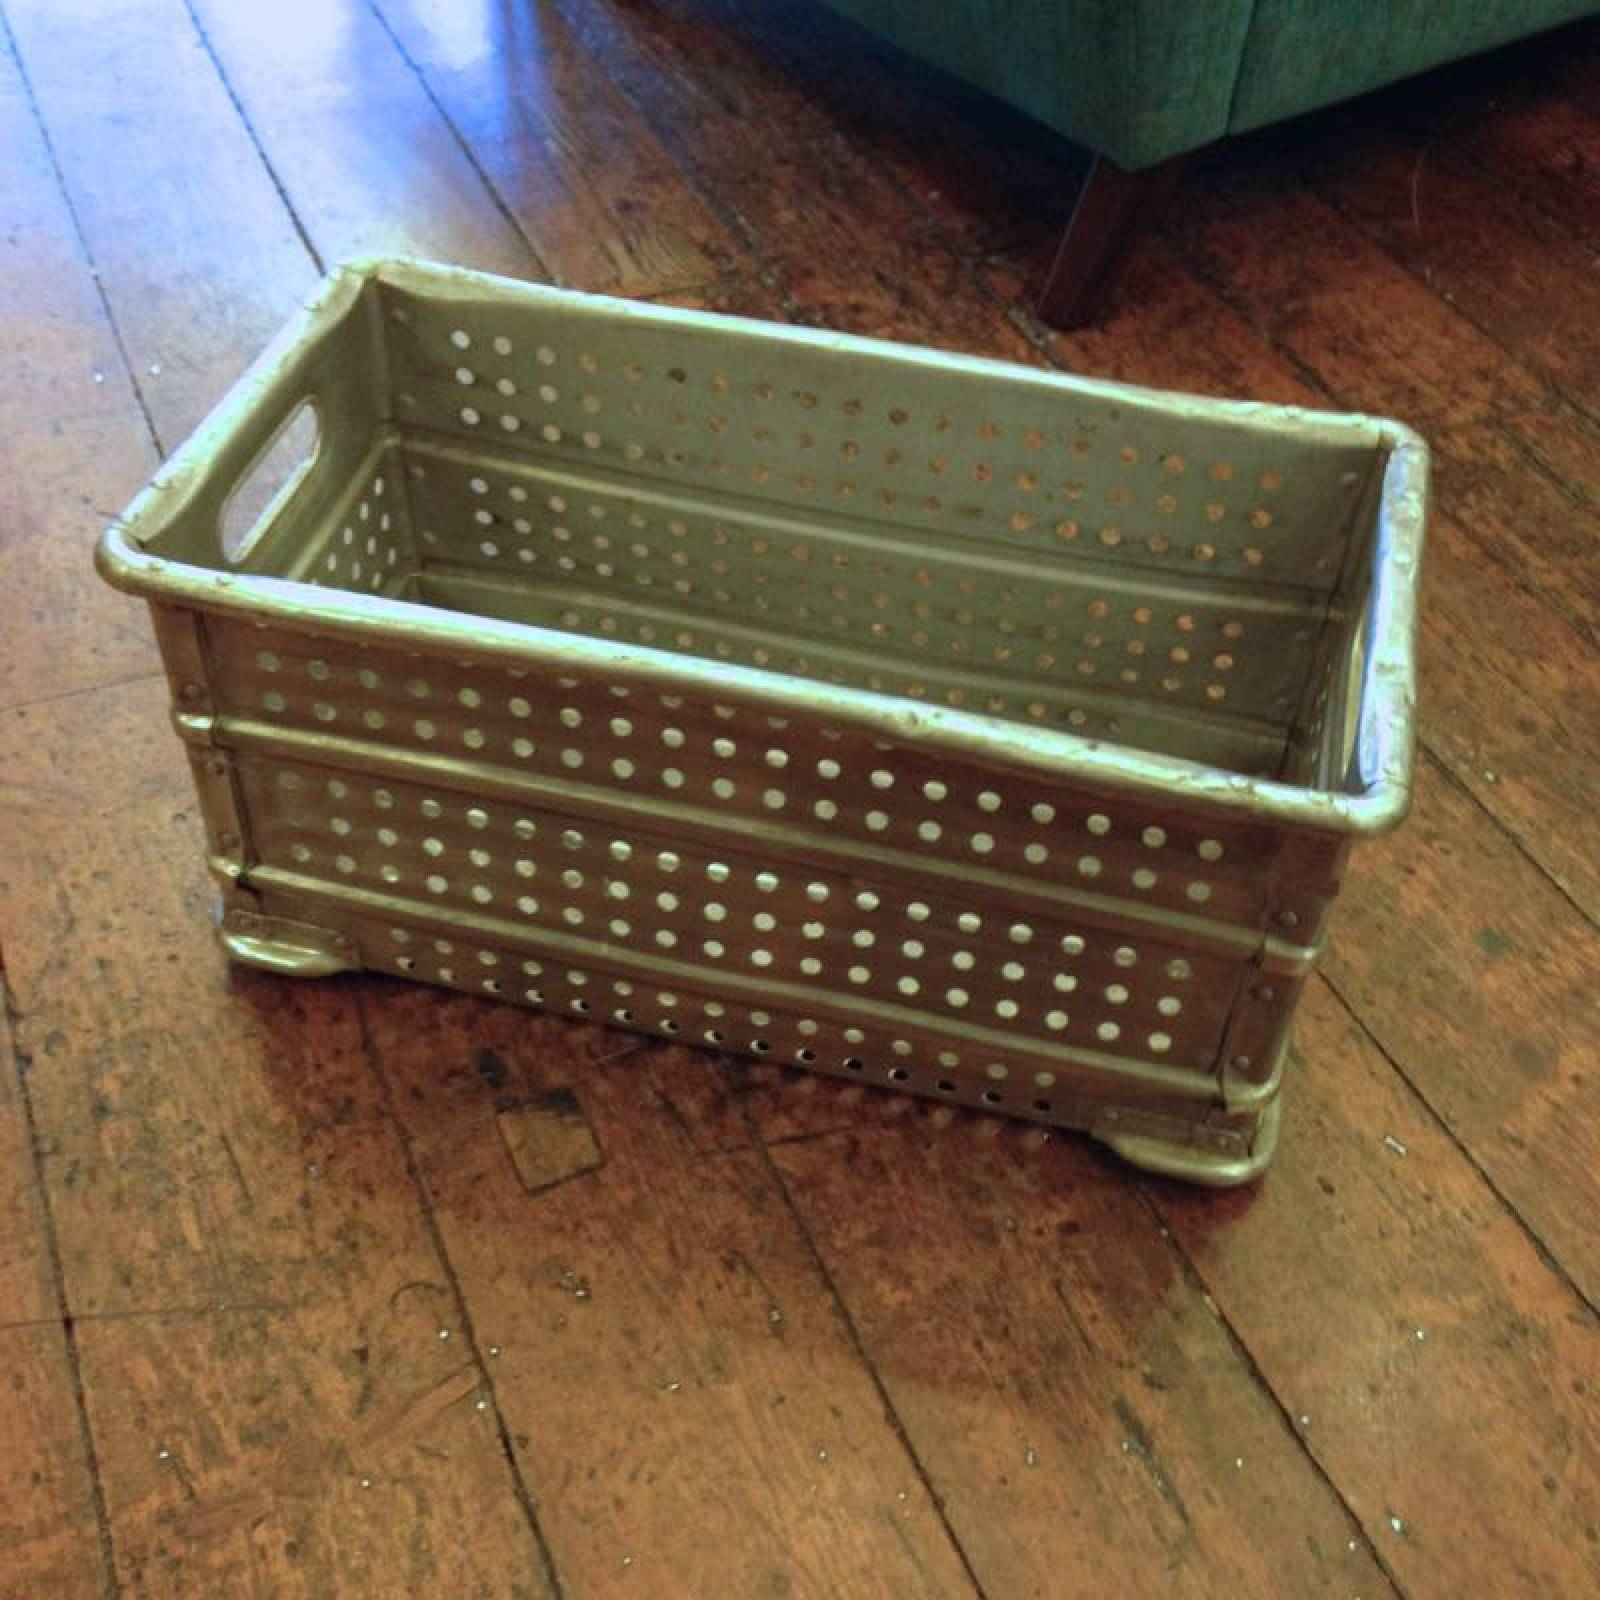 Aluminium Polished Crate with perforated sides from hospital